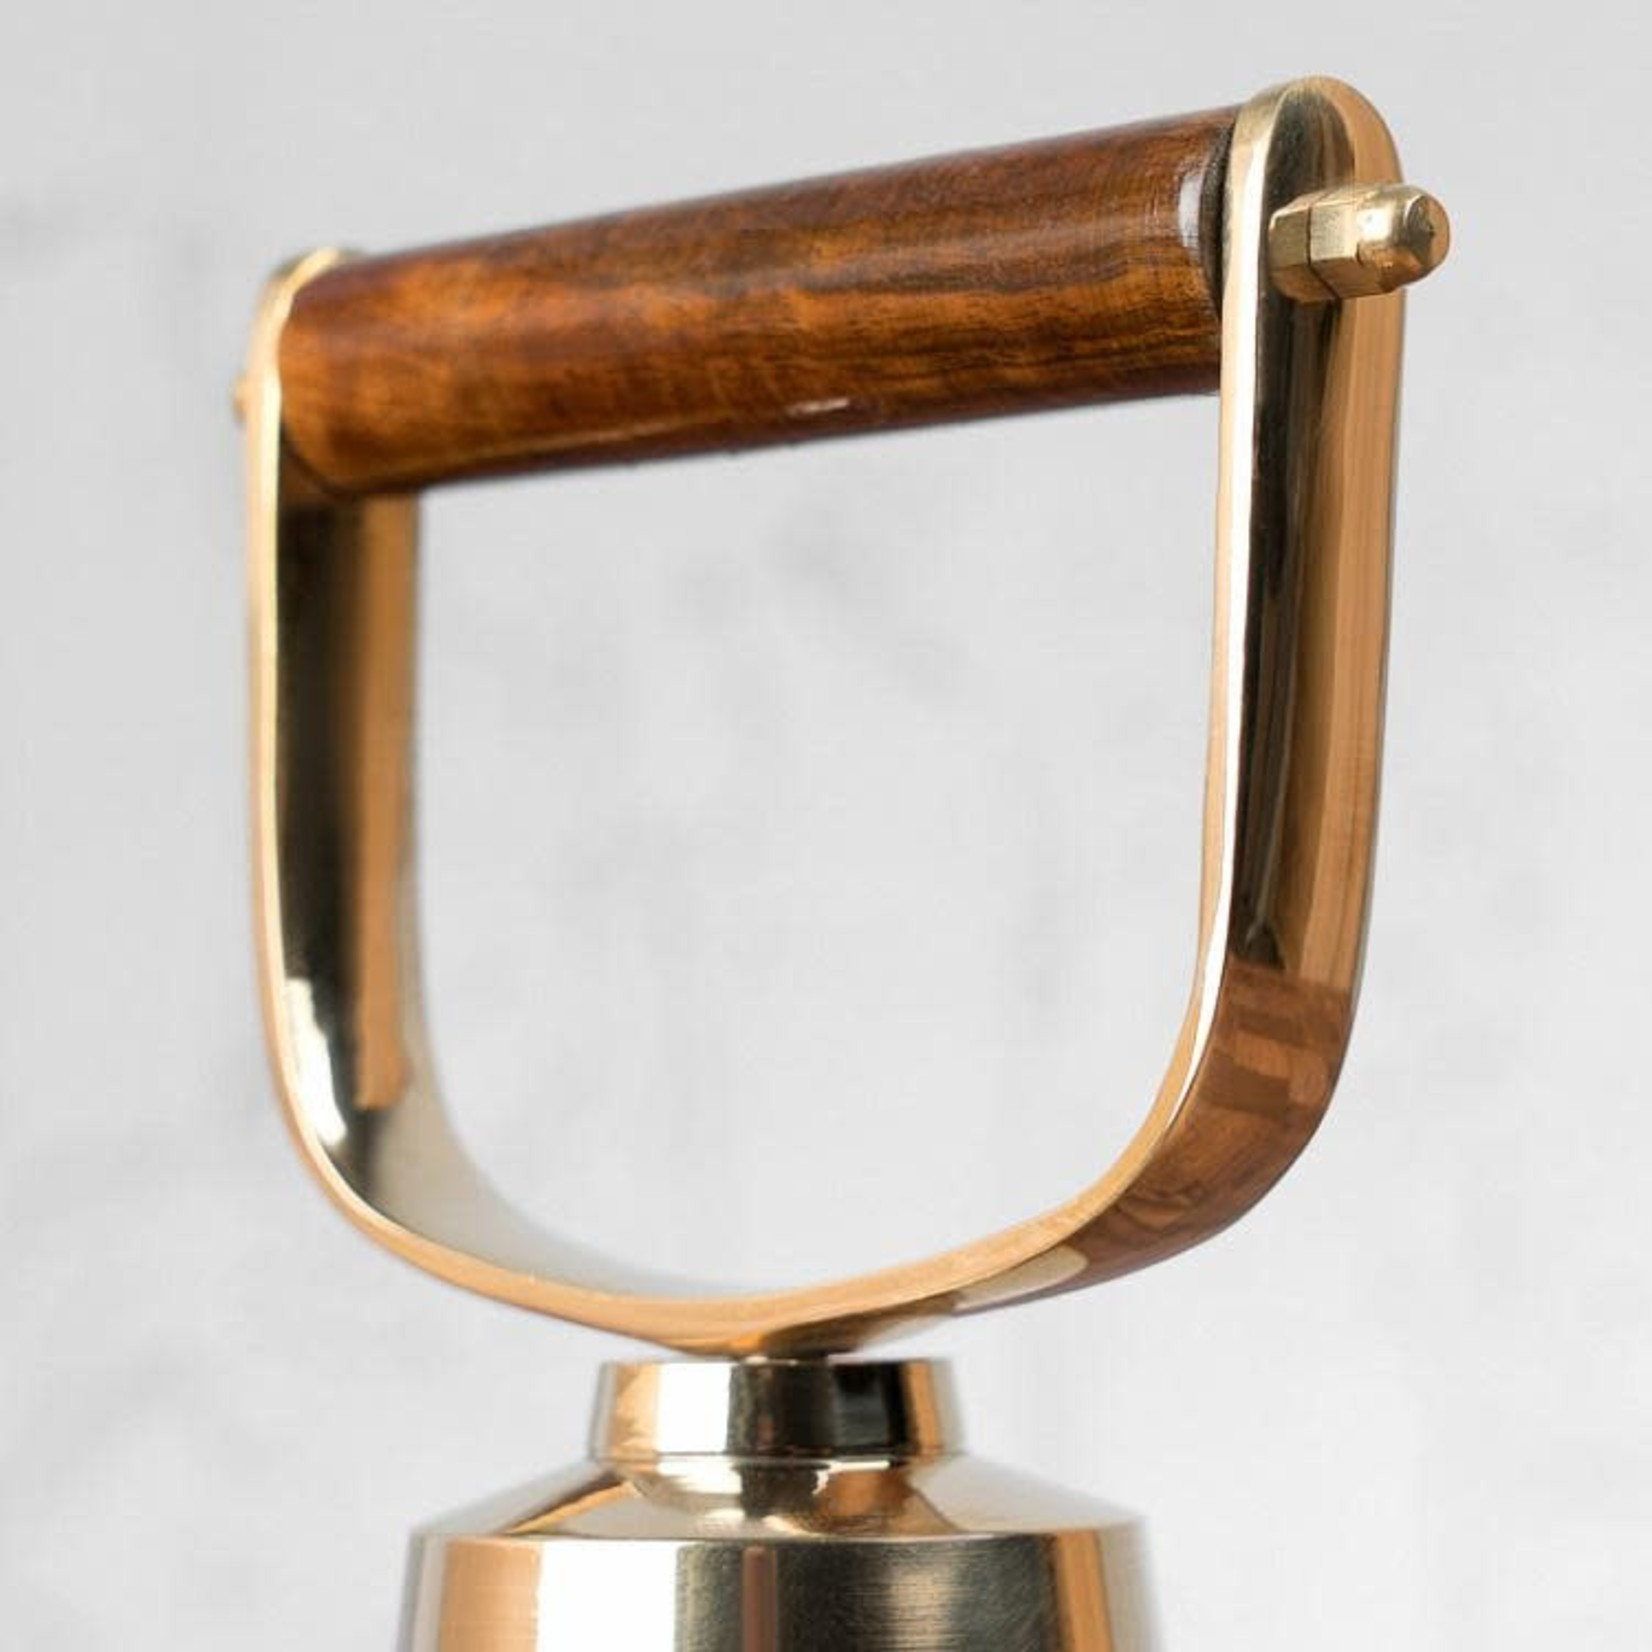 CHEHOMA BELL WITH WOODEN HANDLE